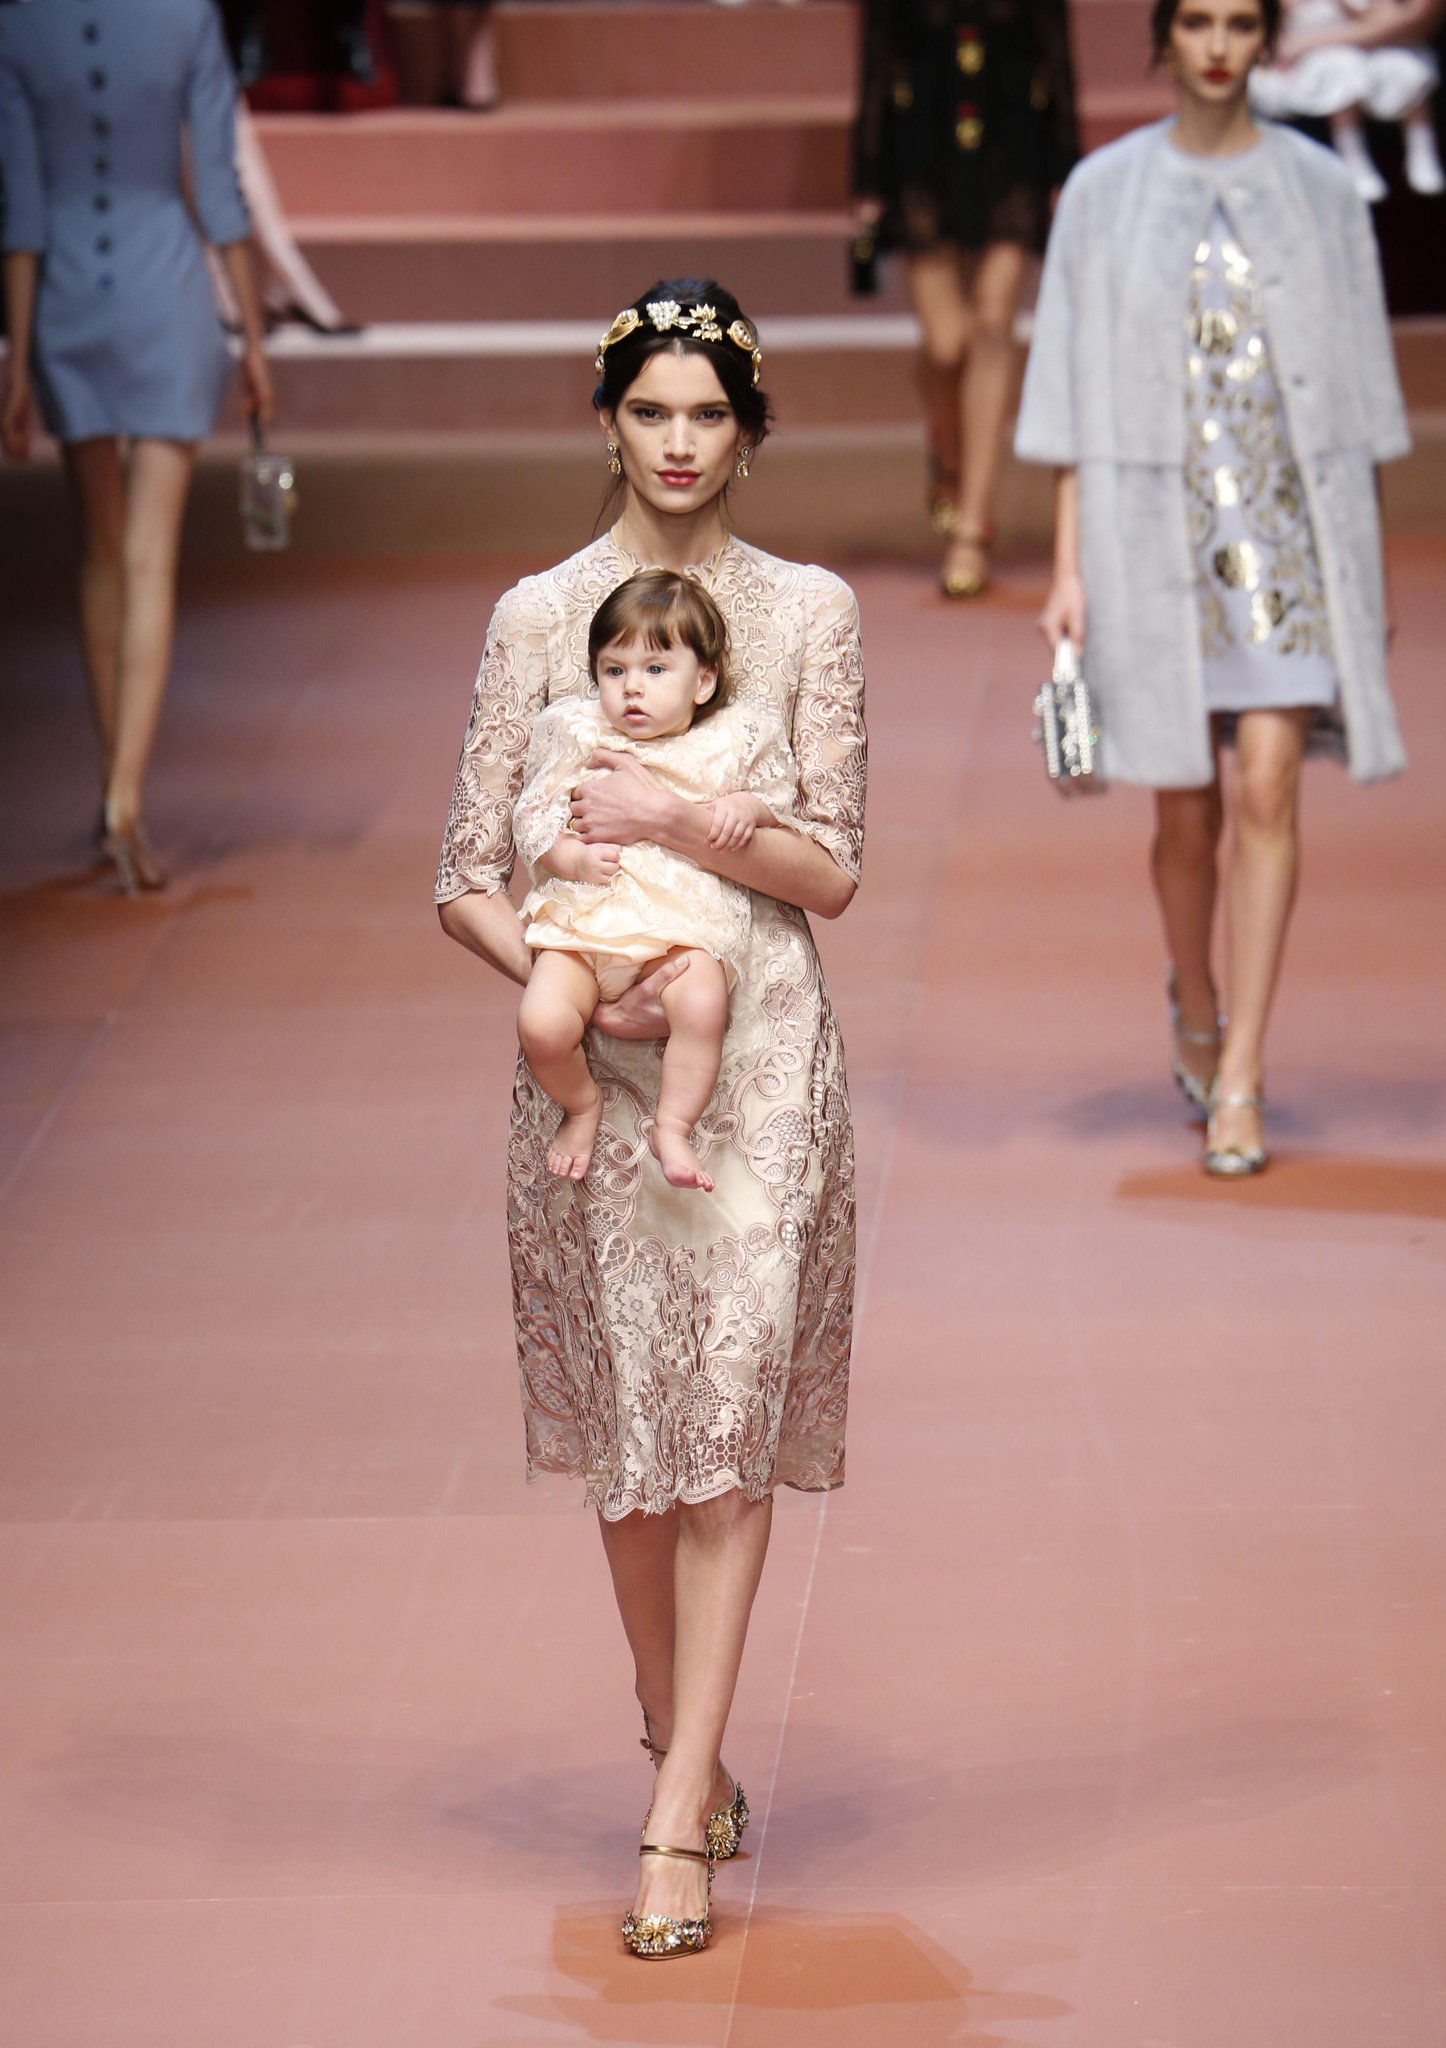 Is this the cutest catwalk collection EVER? http://t.co/mjWmKL6FGD http://t.co/ArtaRgTsLv